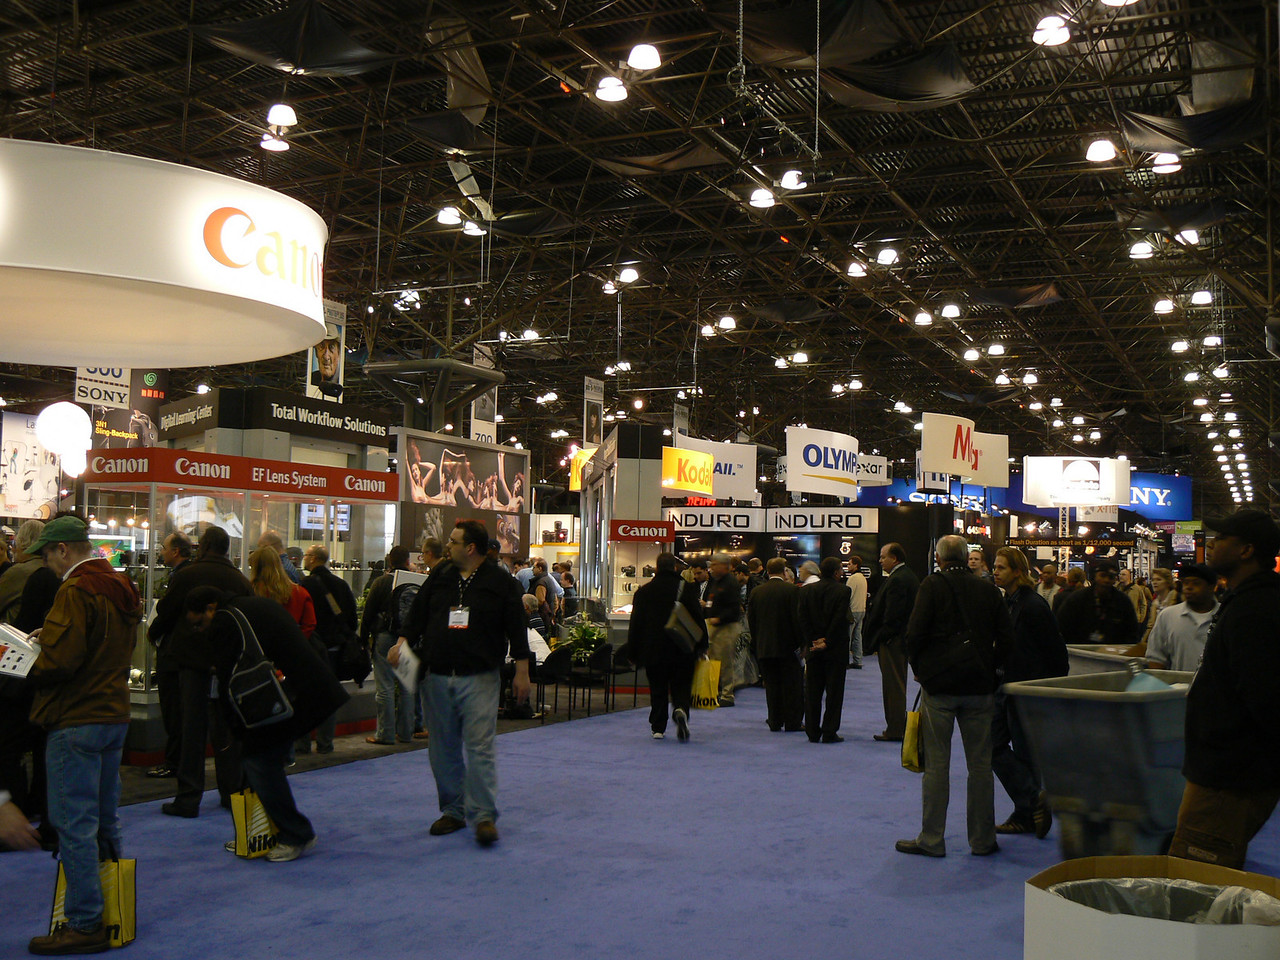 pdn photoplus expo - Javits center NYC, Friday 10/24. #4 of 5